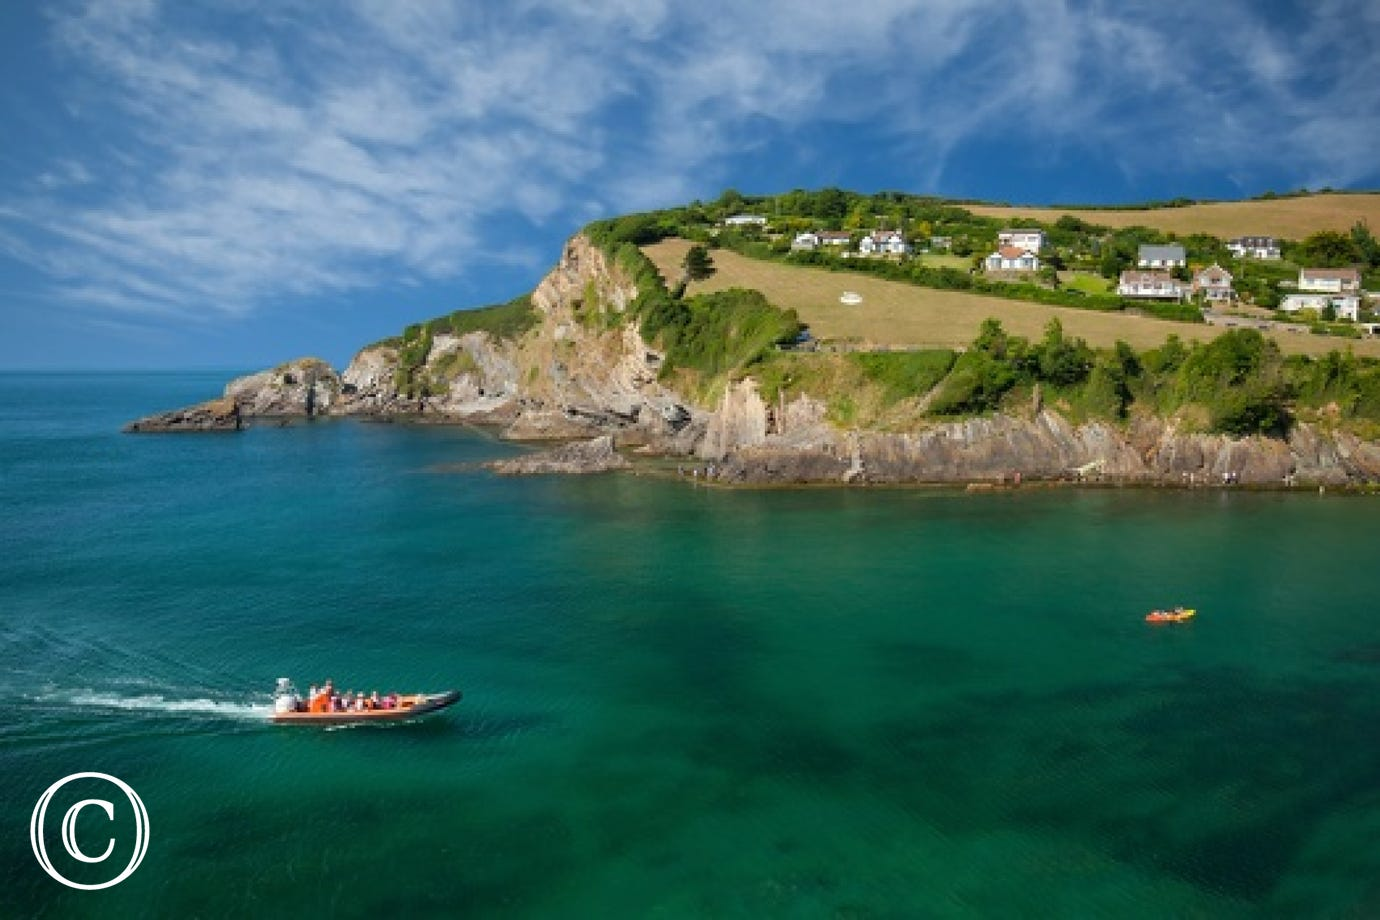 Combe Martin has wonderful coastal walks and a lovely beach with fabulous rock pools that the children will love